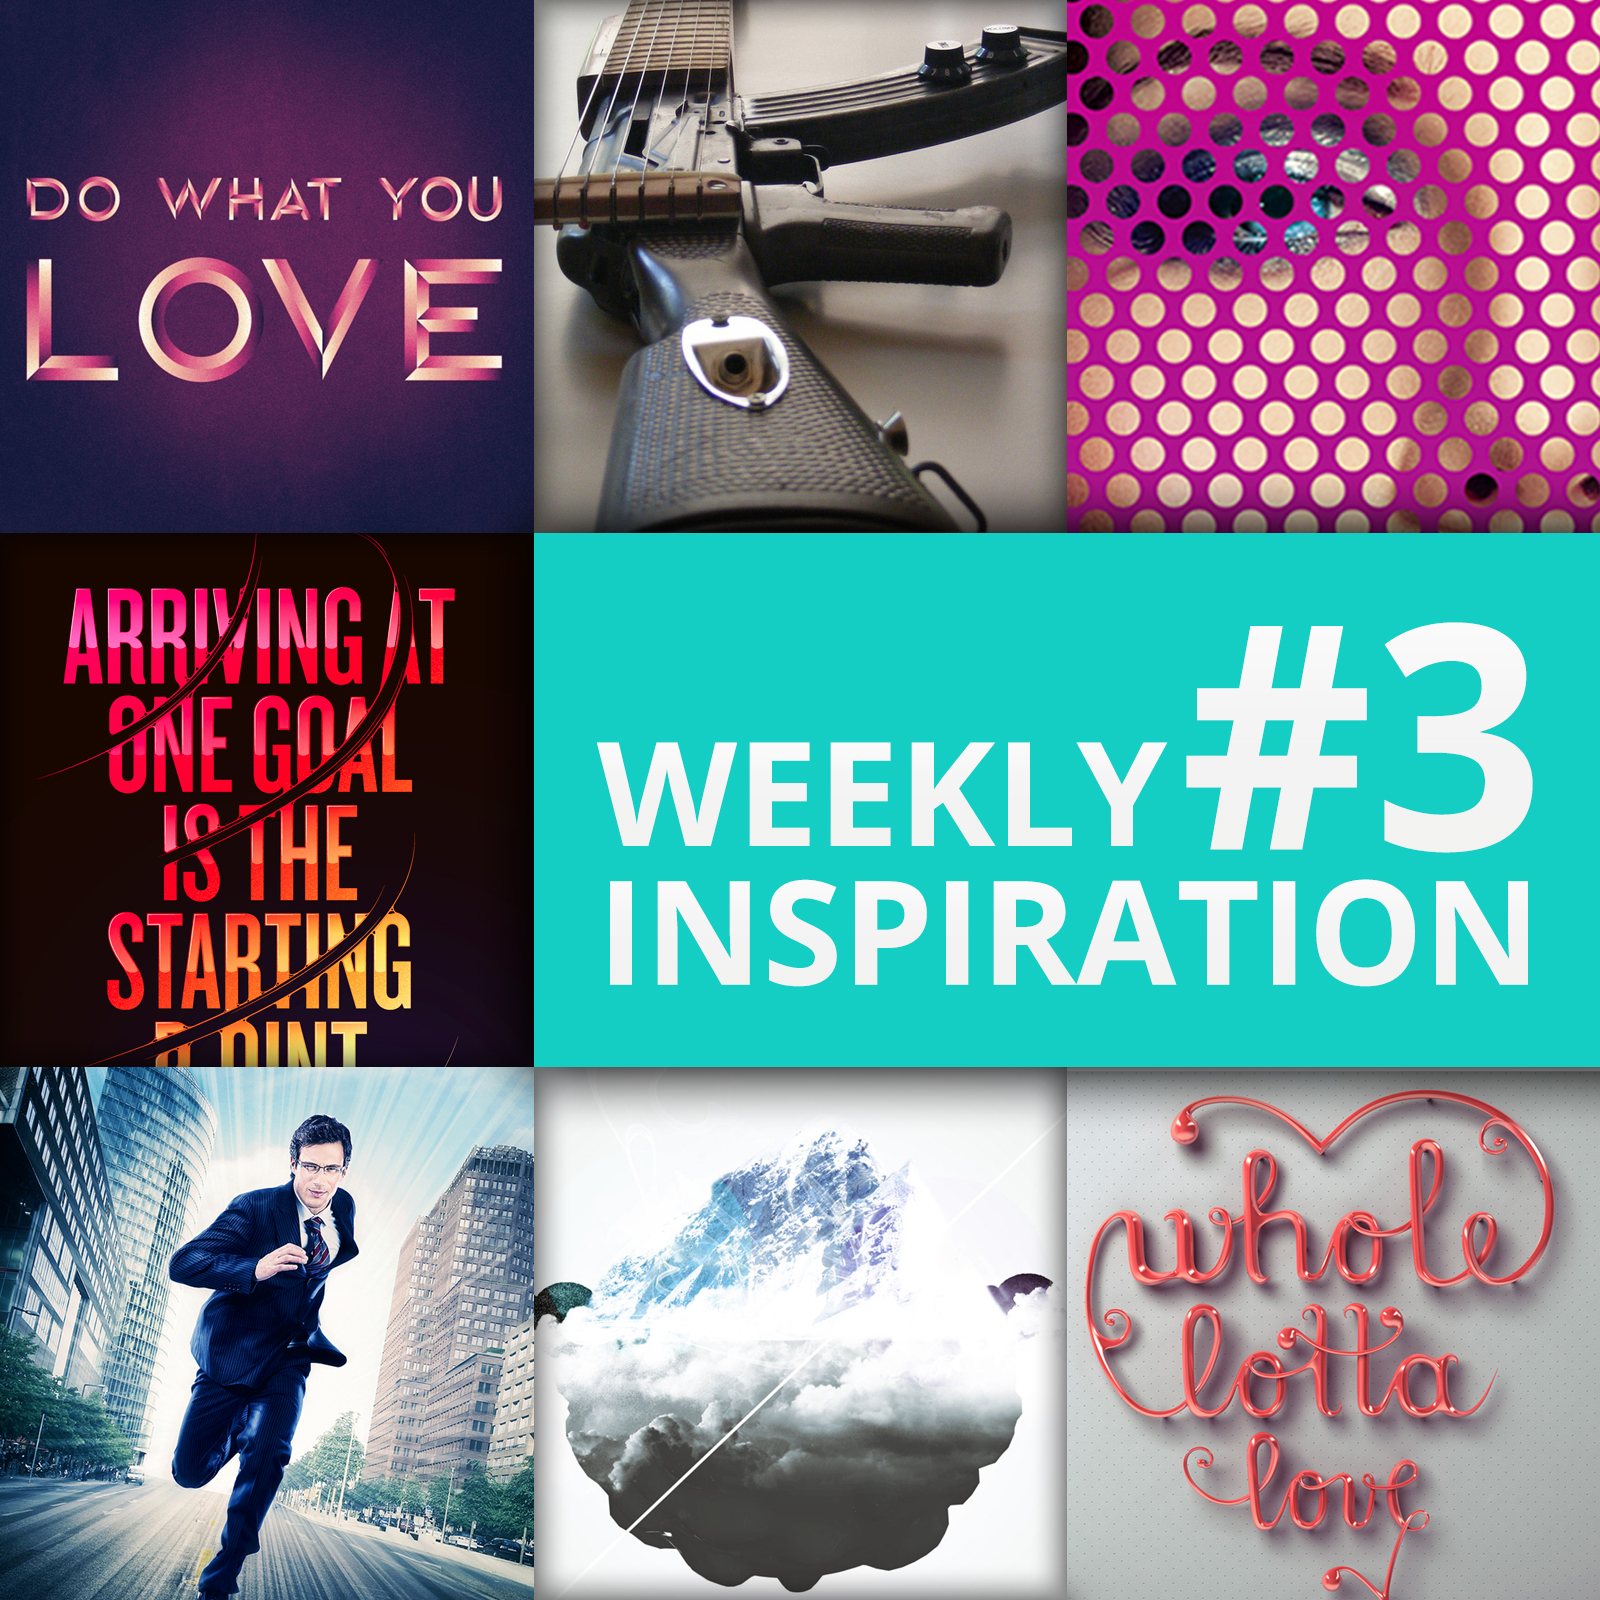 Weekly Inspiration #3